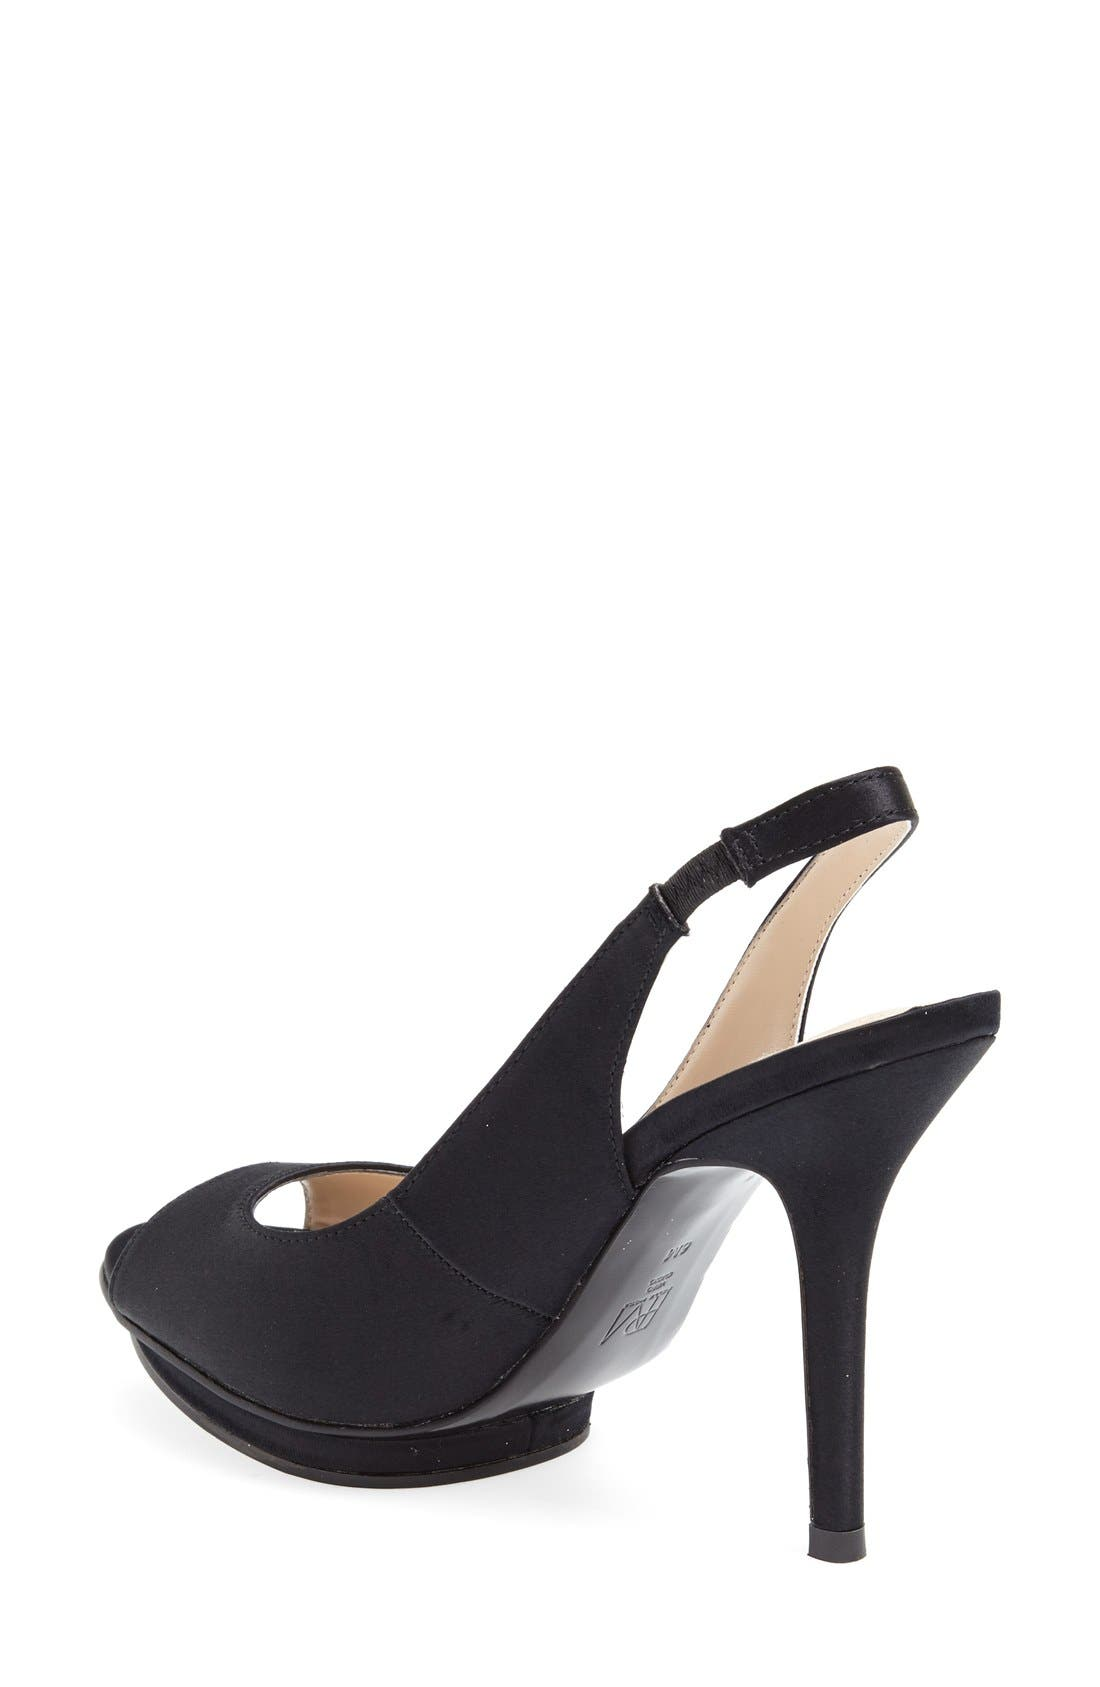 'Rivka' Open Toe Platform Slingback Sandal,                             Alternate thumbnail 6, color,